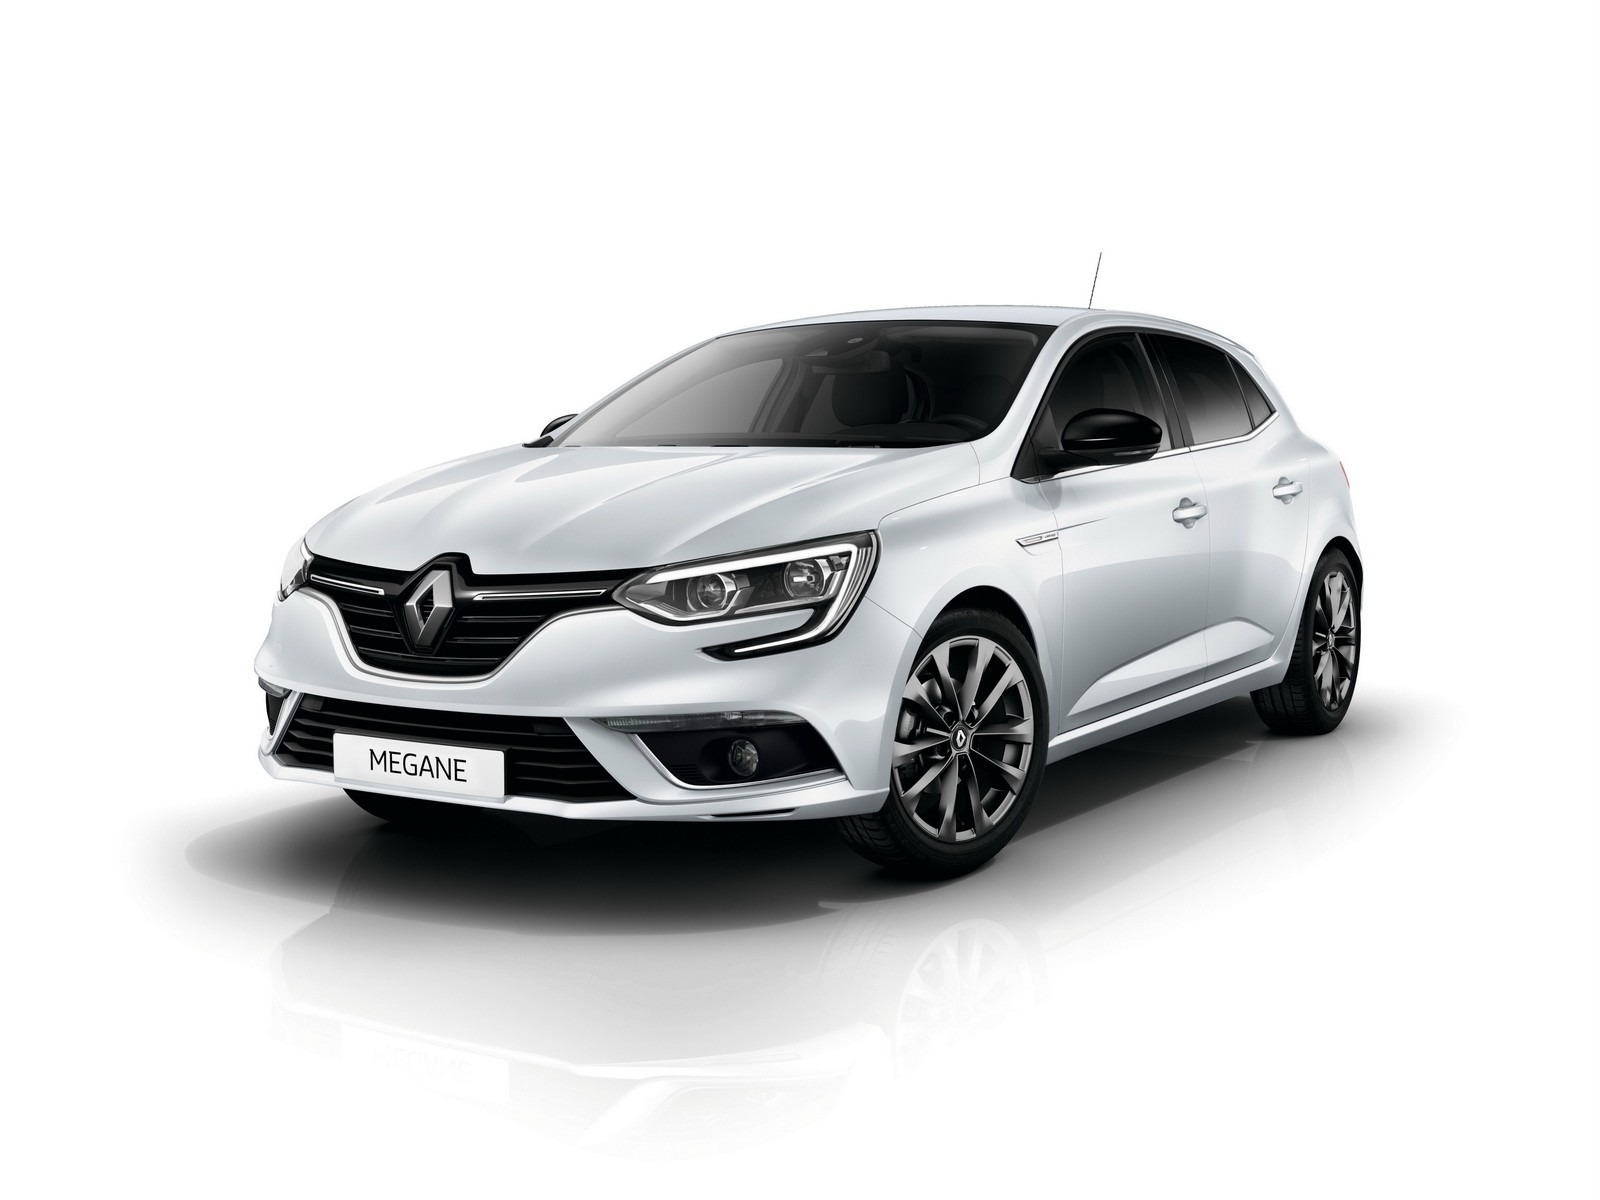 renault kadjar adds 1 6 energy tce 165 engine megane gets limited edition model autoevolution. Black Bedroom Furniture Sets. Home Design Ideas